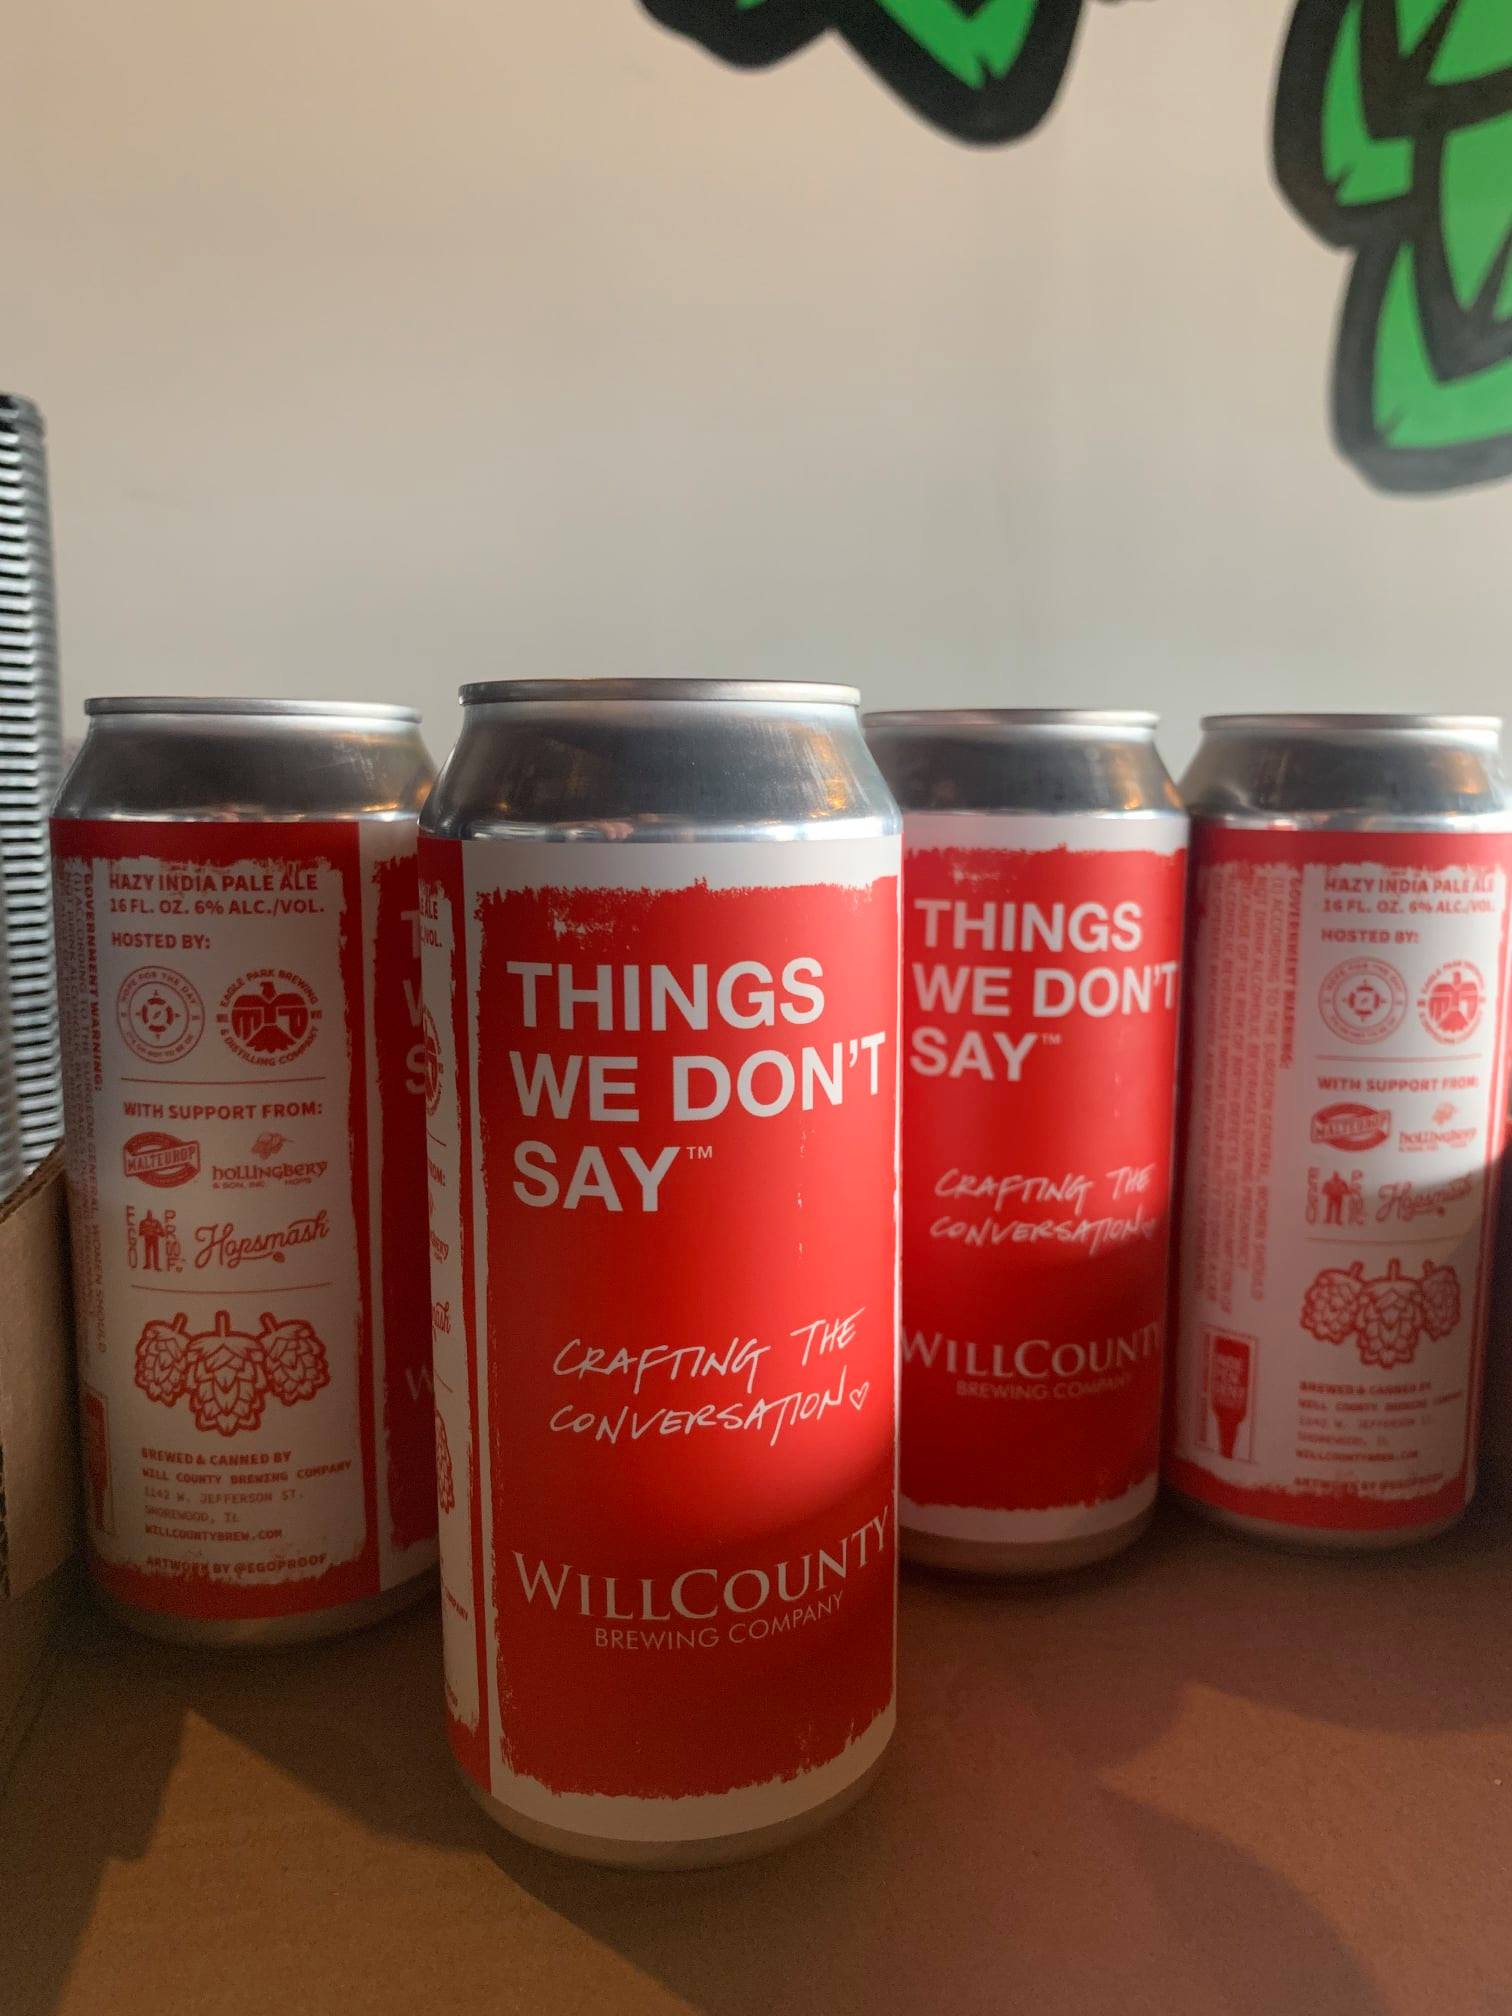 Cans of Thigns We Dont' Say at Will County Brewing  COmpany